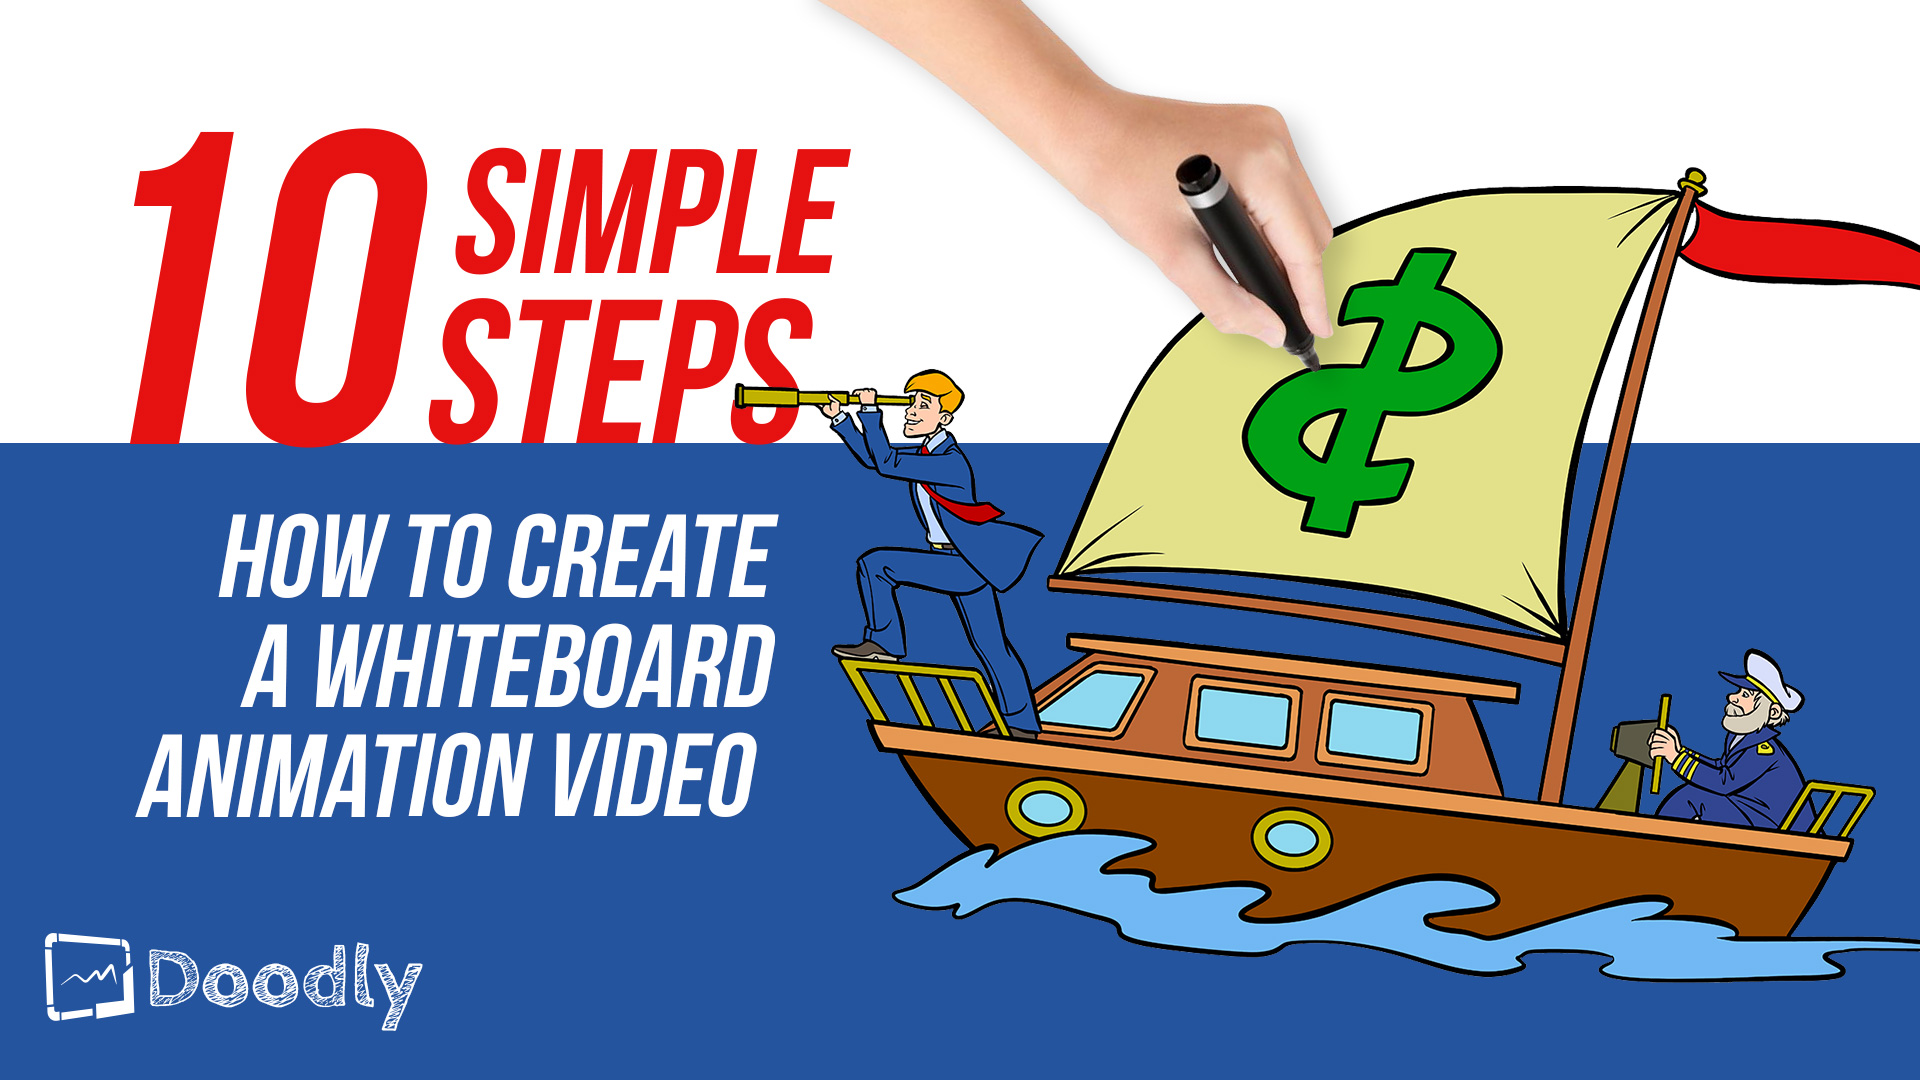 How to create a whiteboard animation video in 10 simple steps